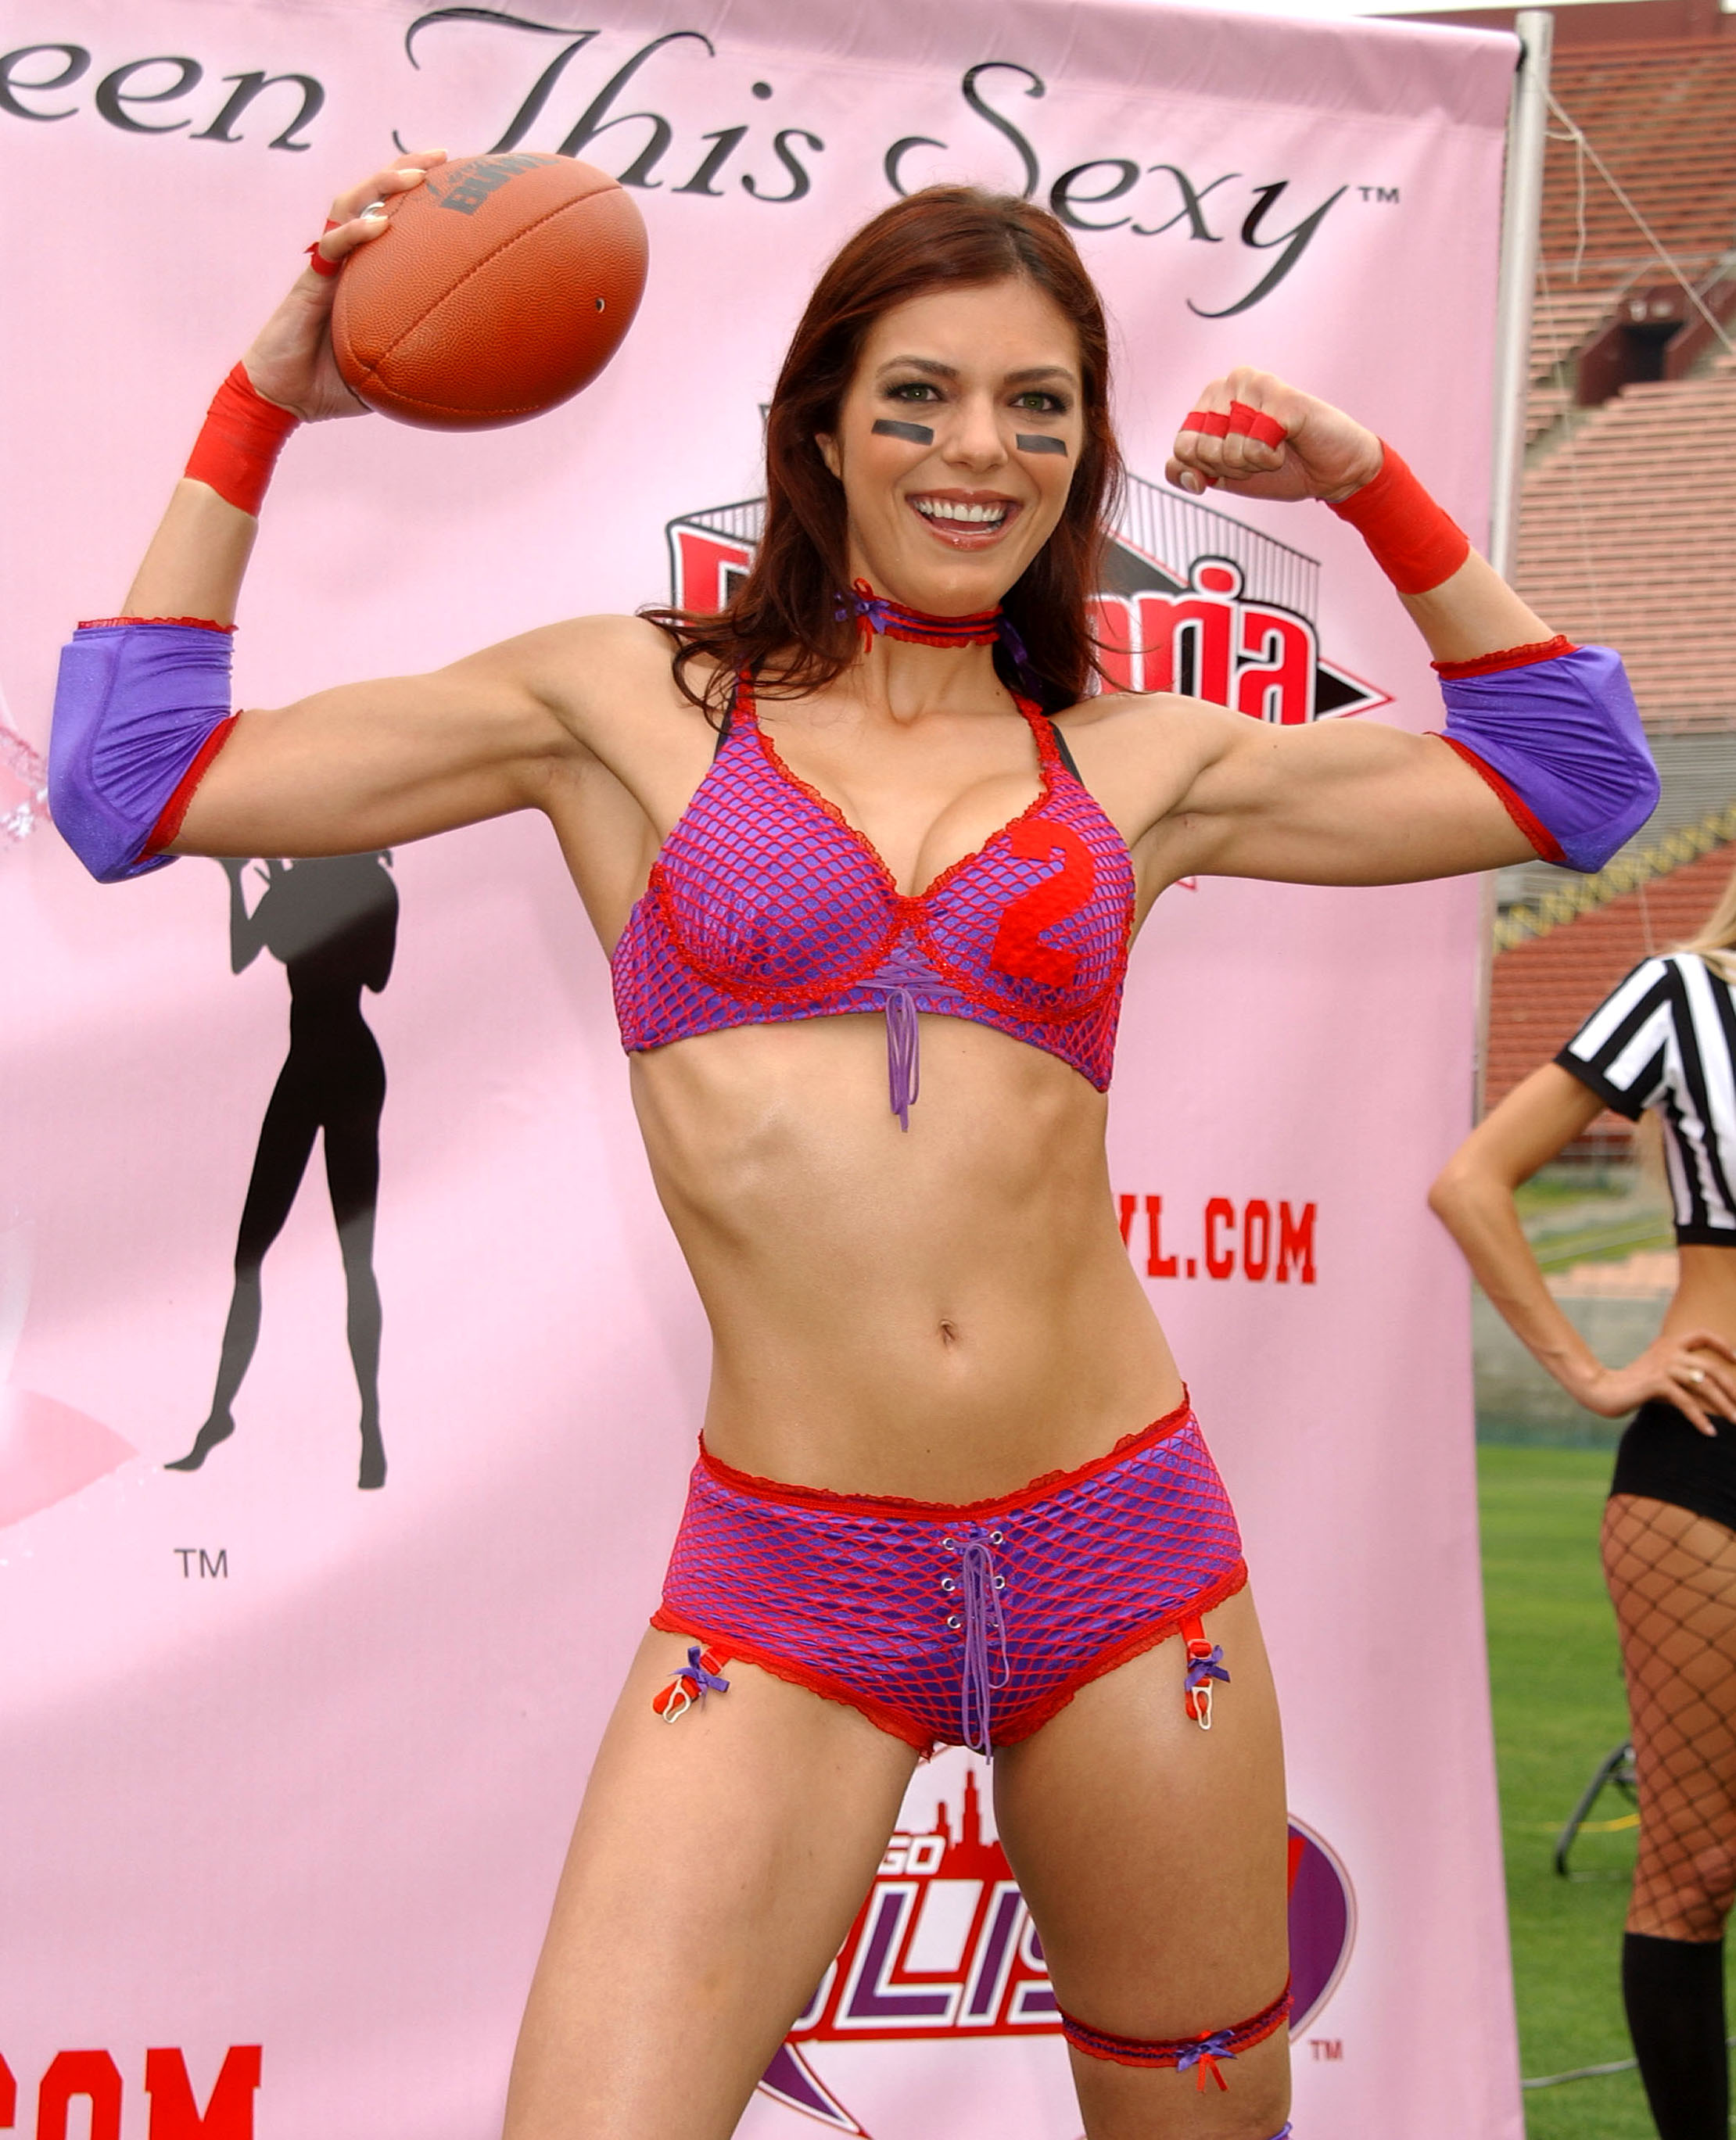 adrianne curry net worth